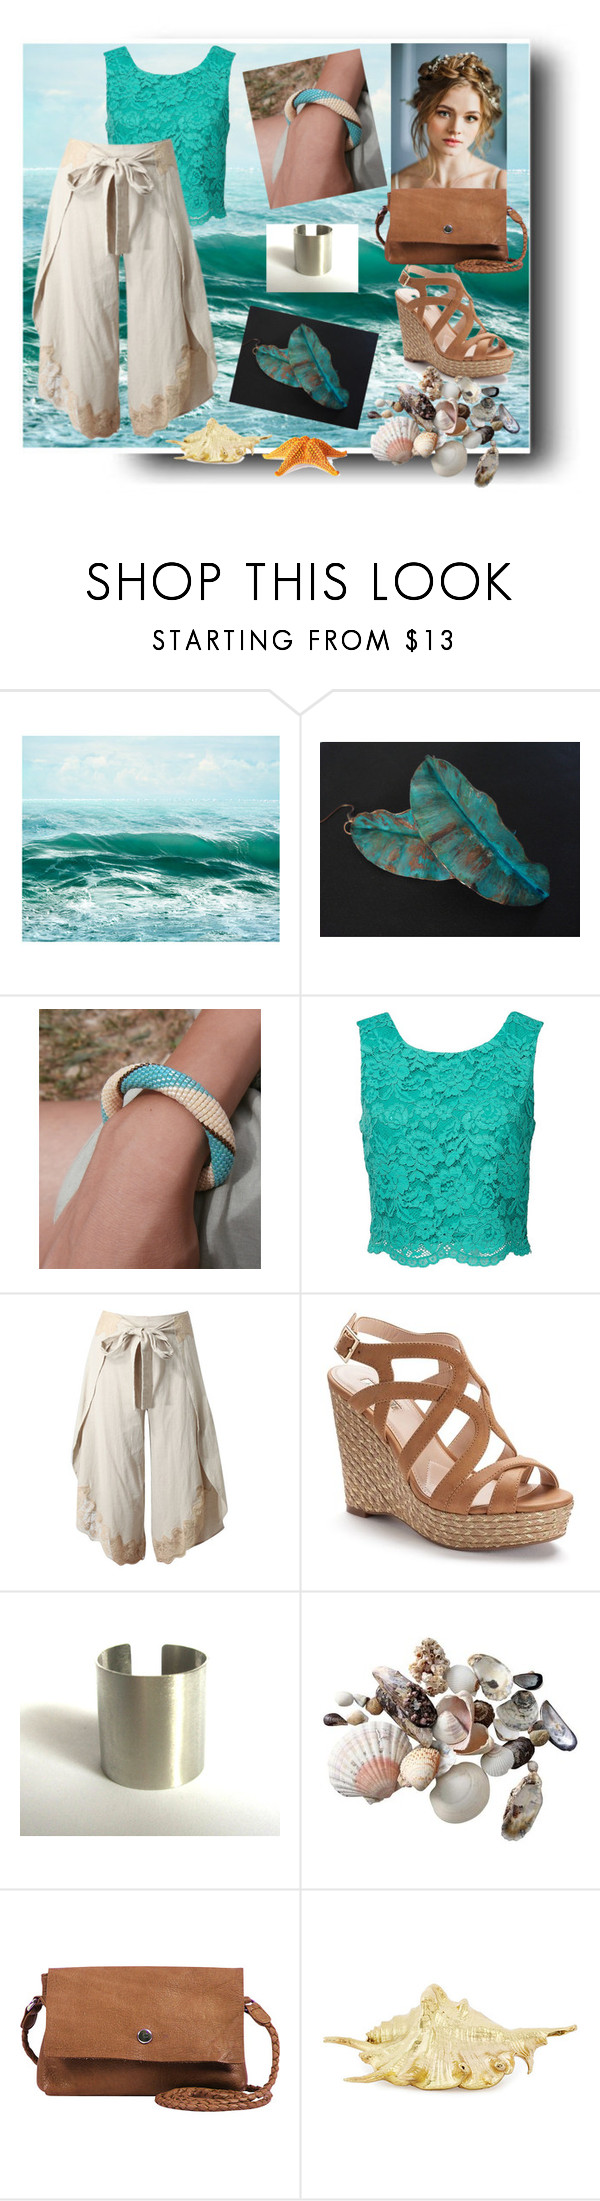 """Turquoise!"" by colchico ❤ liked on Polyvore featuring Jennifer Lopez, Day & Mood and Philmore"